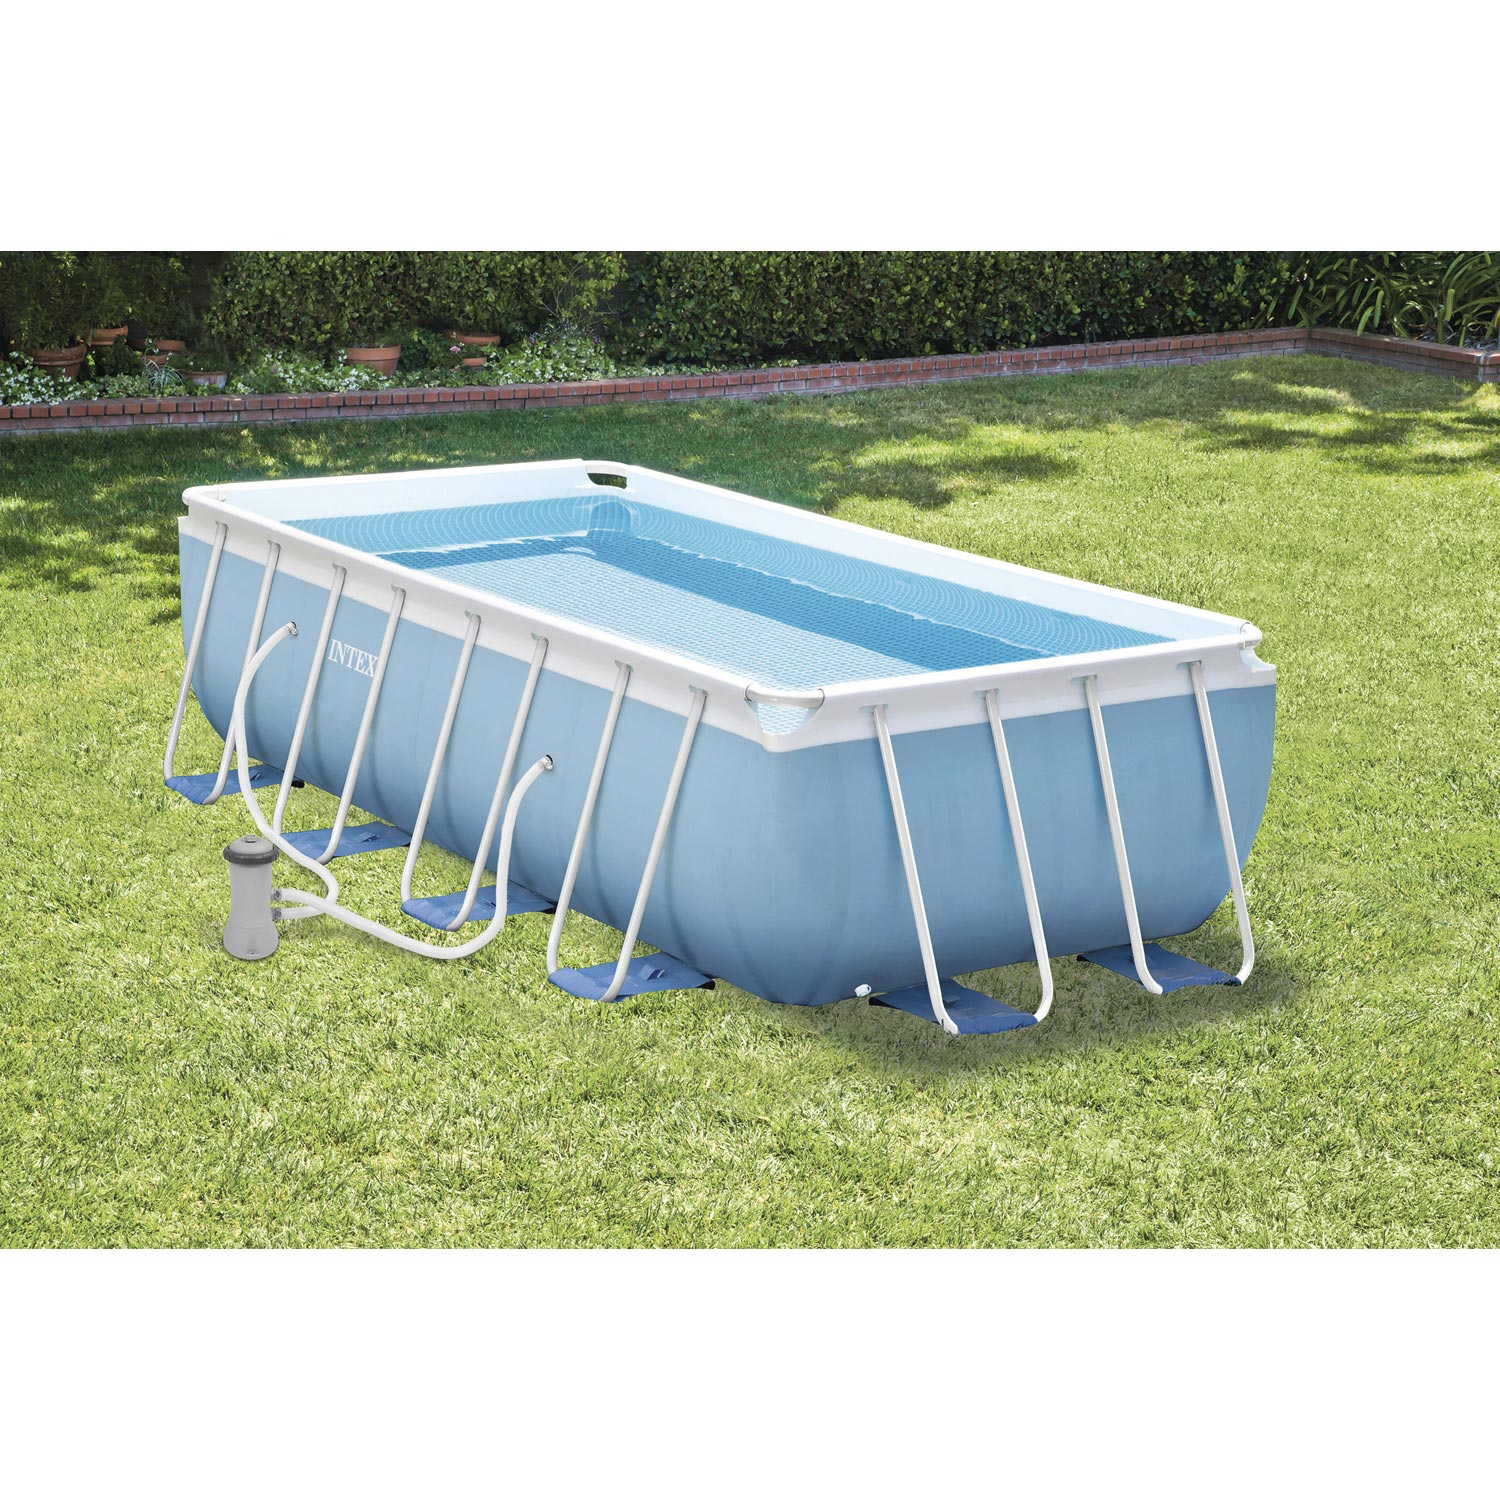 Piscine hors sol autoportante tubulaire prism frame intex for Piscine hors sol teck